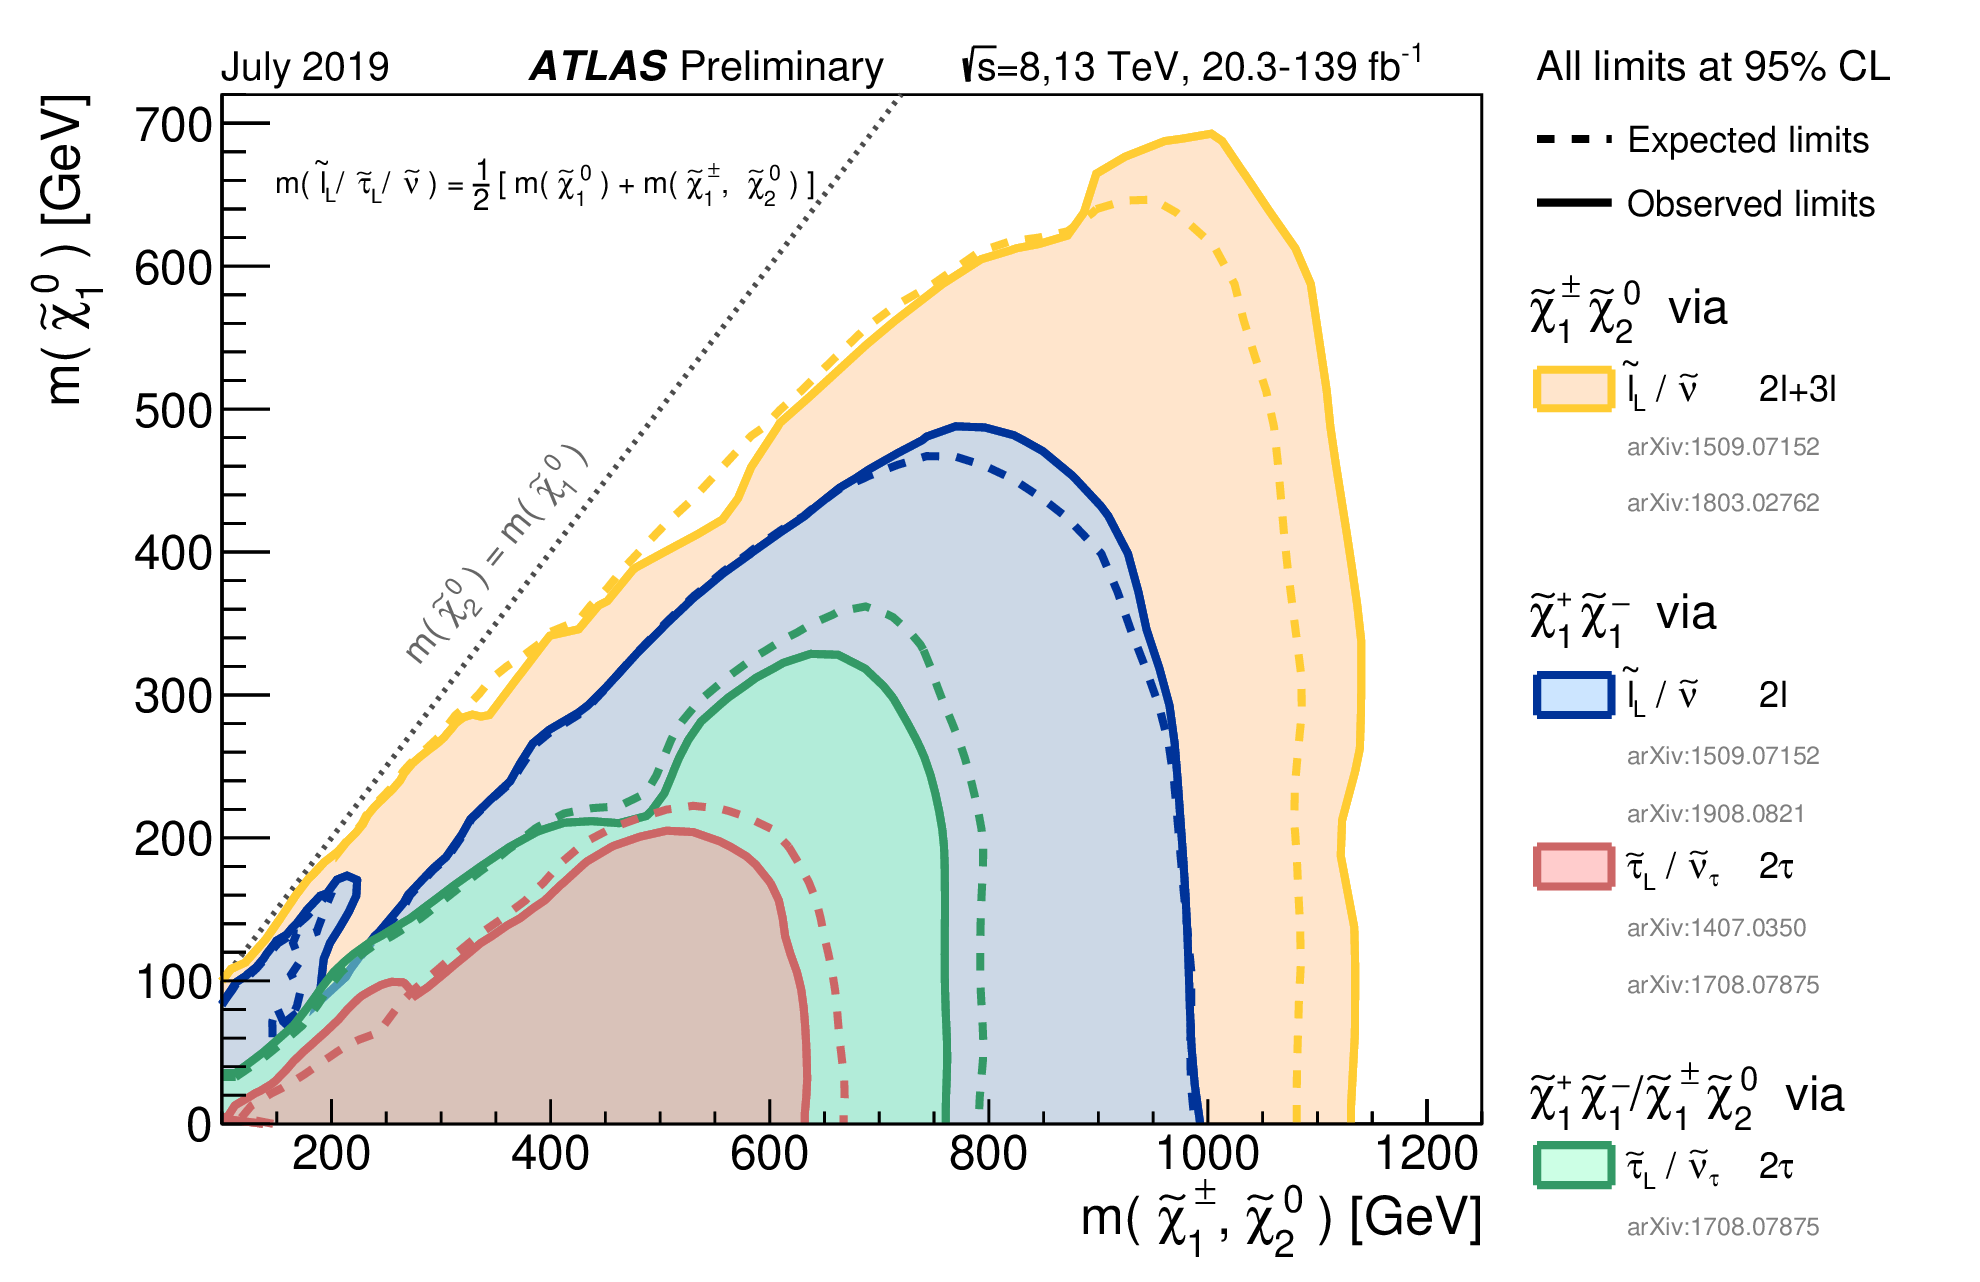 https://atlas.web.cern.ch/Atlas/GROUPS/PHYSICS/CombinedSummaryPlots/SUSY/ATLAS_SUSY_EWSummary_sleptons/ATLAS_SUSY_EWSummary_sleptons.png